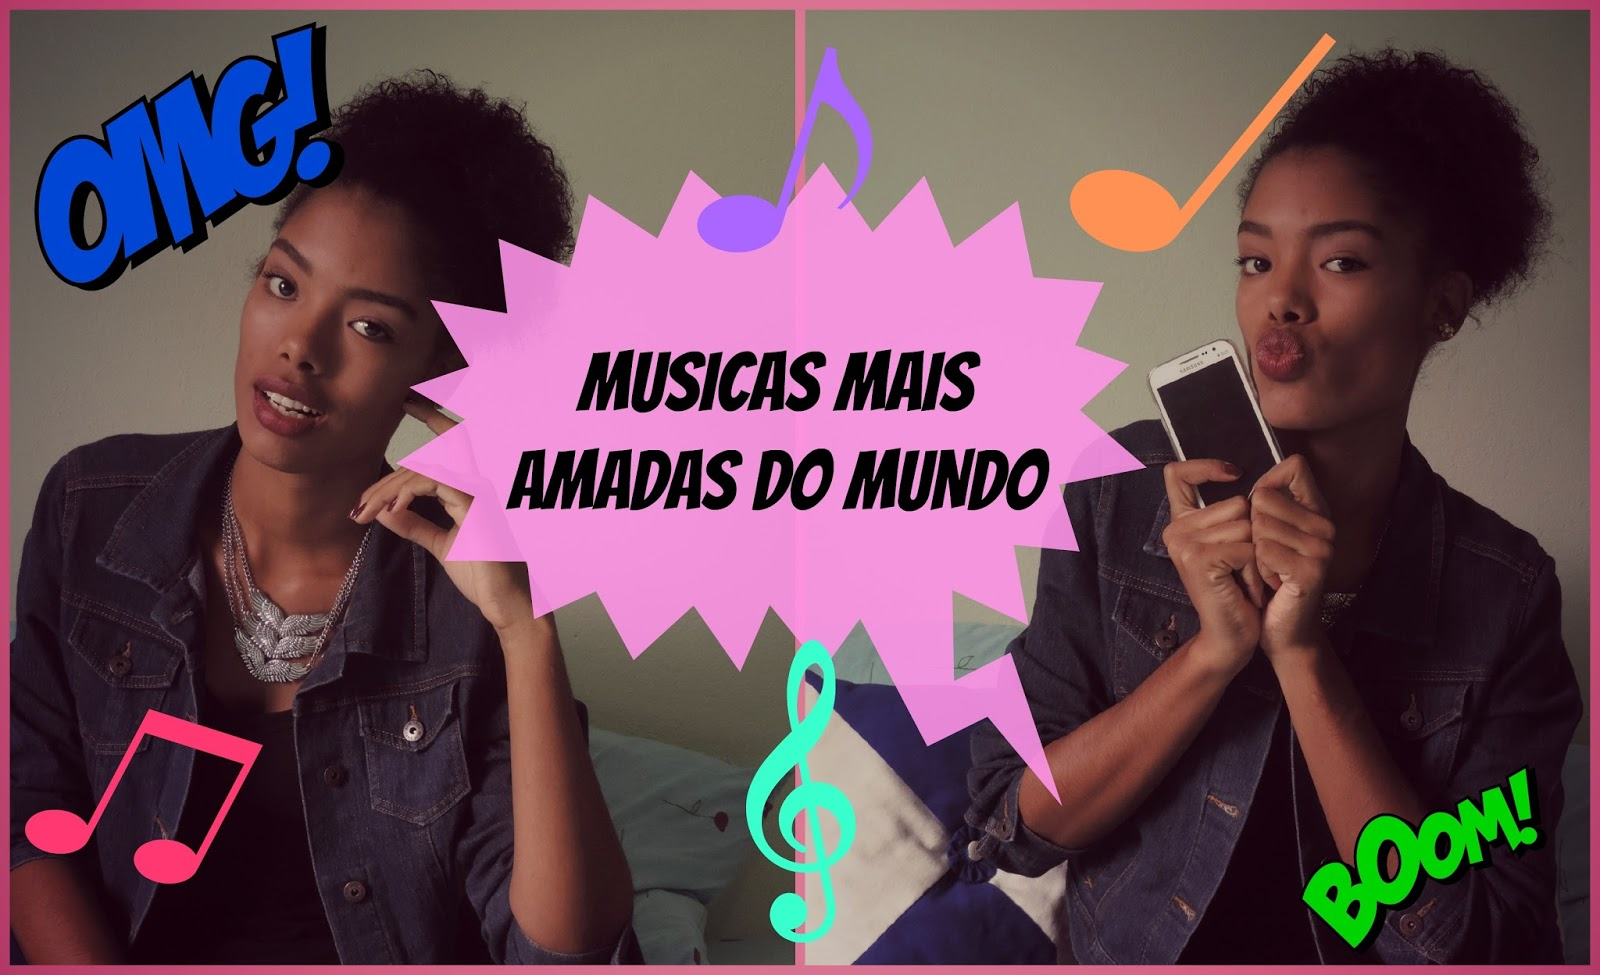 Vídeo: MUSICAS MAIS AMADAS DO MUNDO